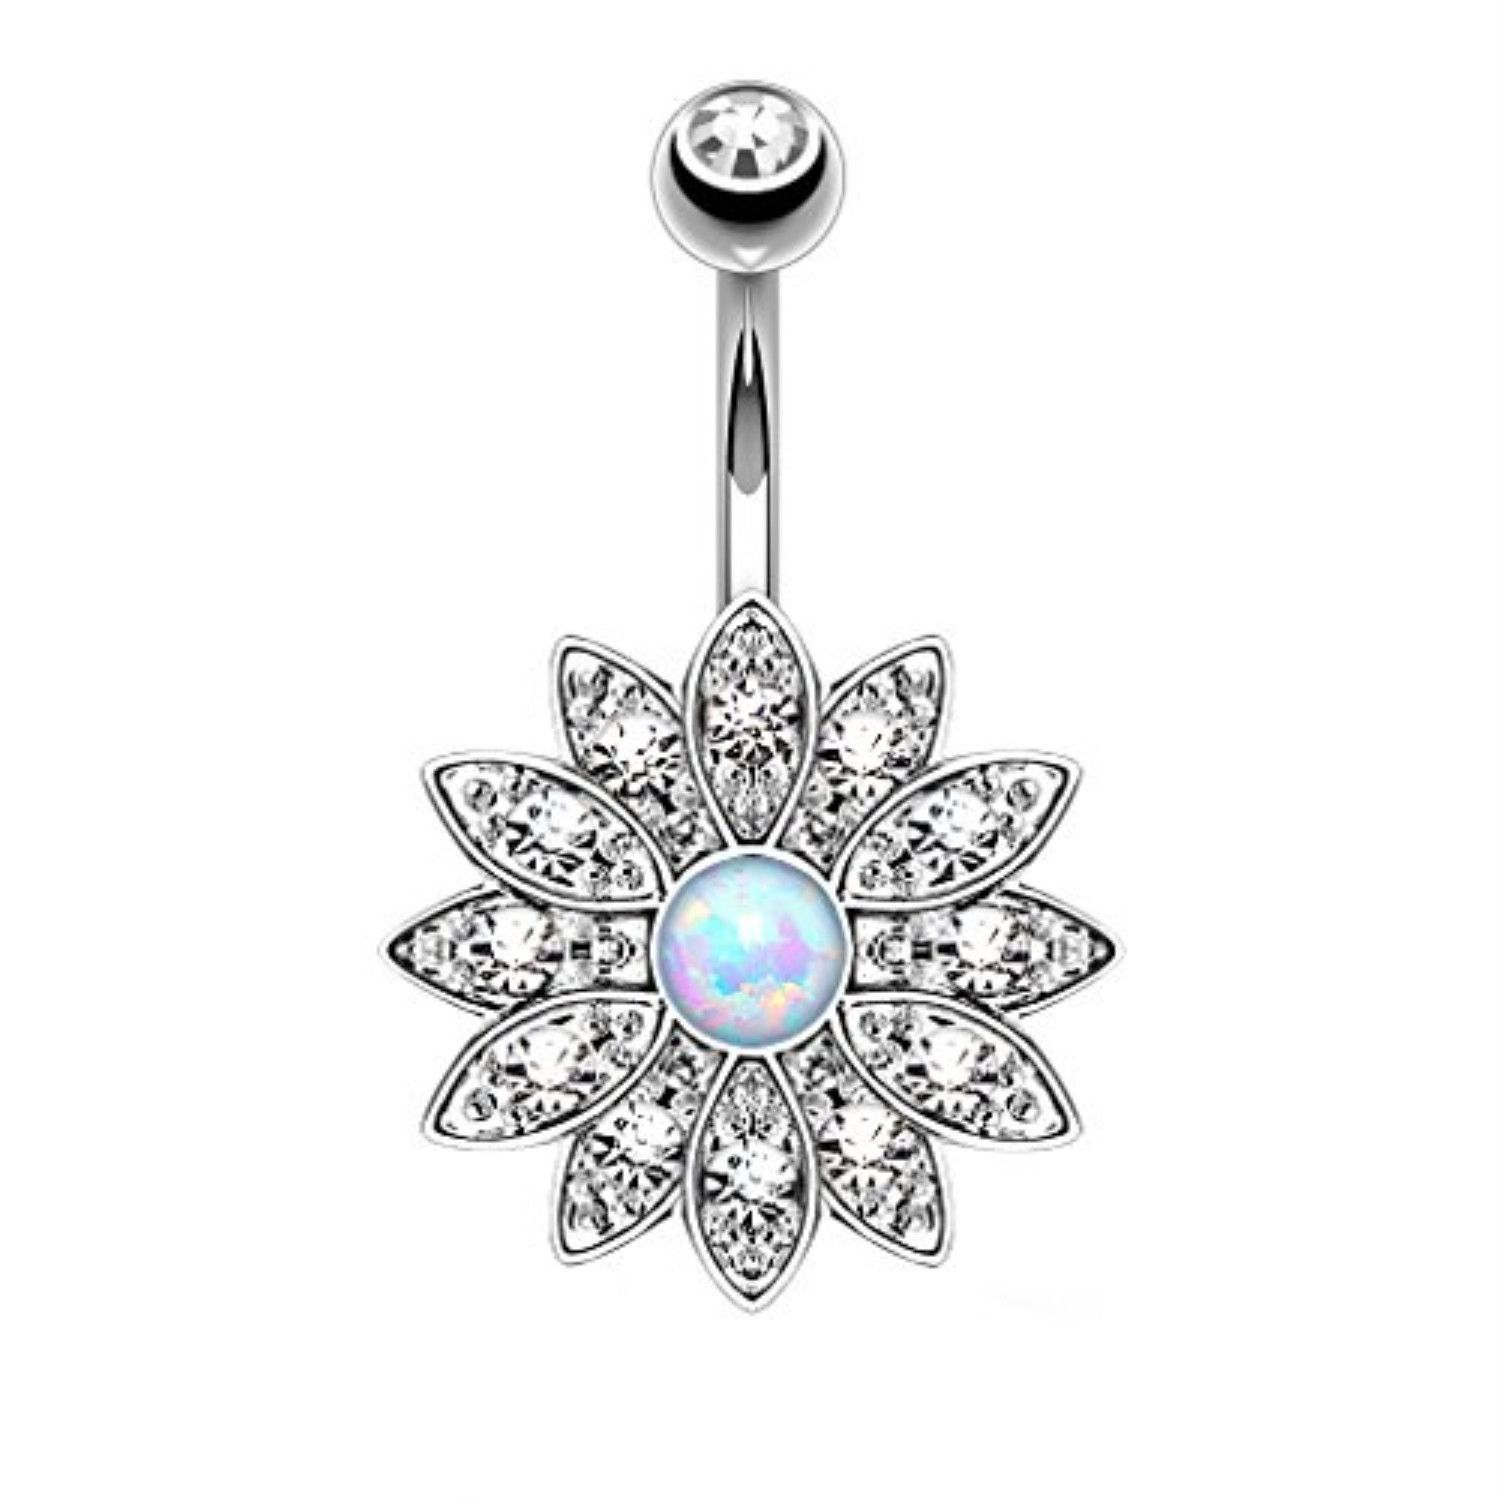 Belly without piercing  BodyJYou Belly Button Ring Crystal Clear Jeweled Opal Flower